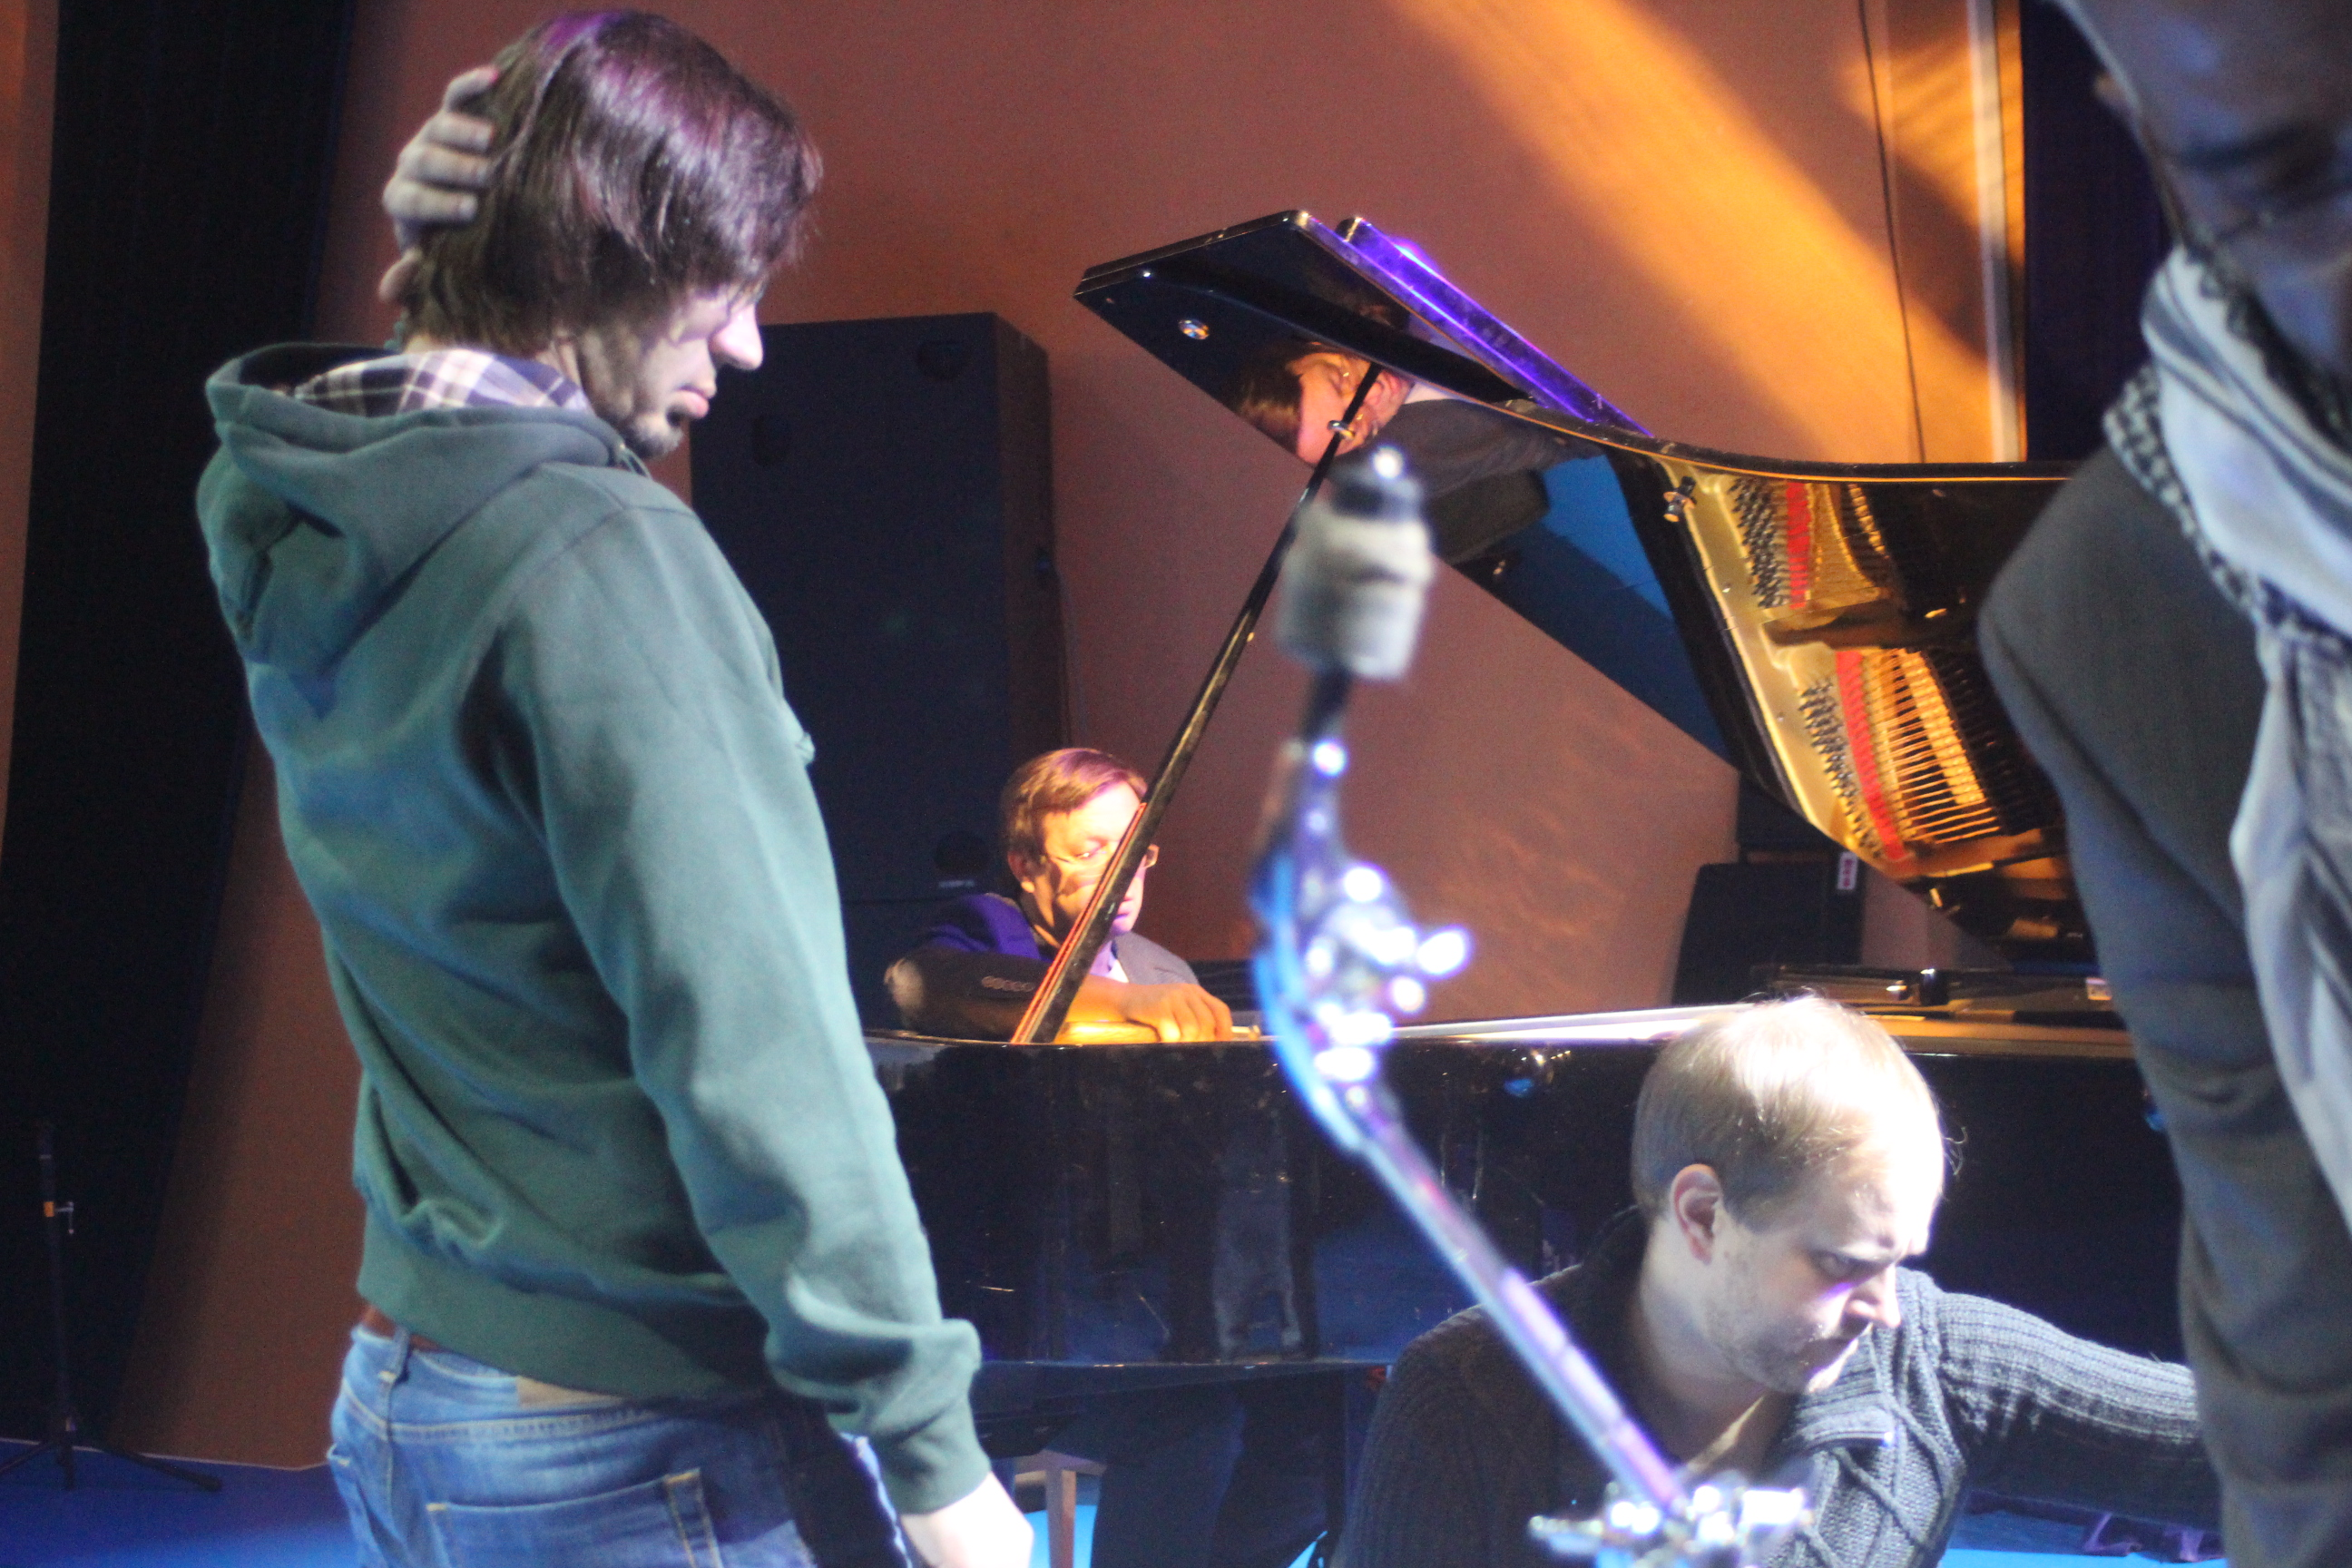 Russian saxophonist bubyakin kirill, bassist michael o'brien at the michelle walker sound check at the philharmonic in vladivostok, russia.